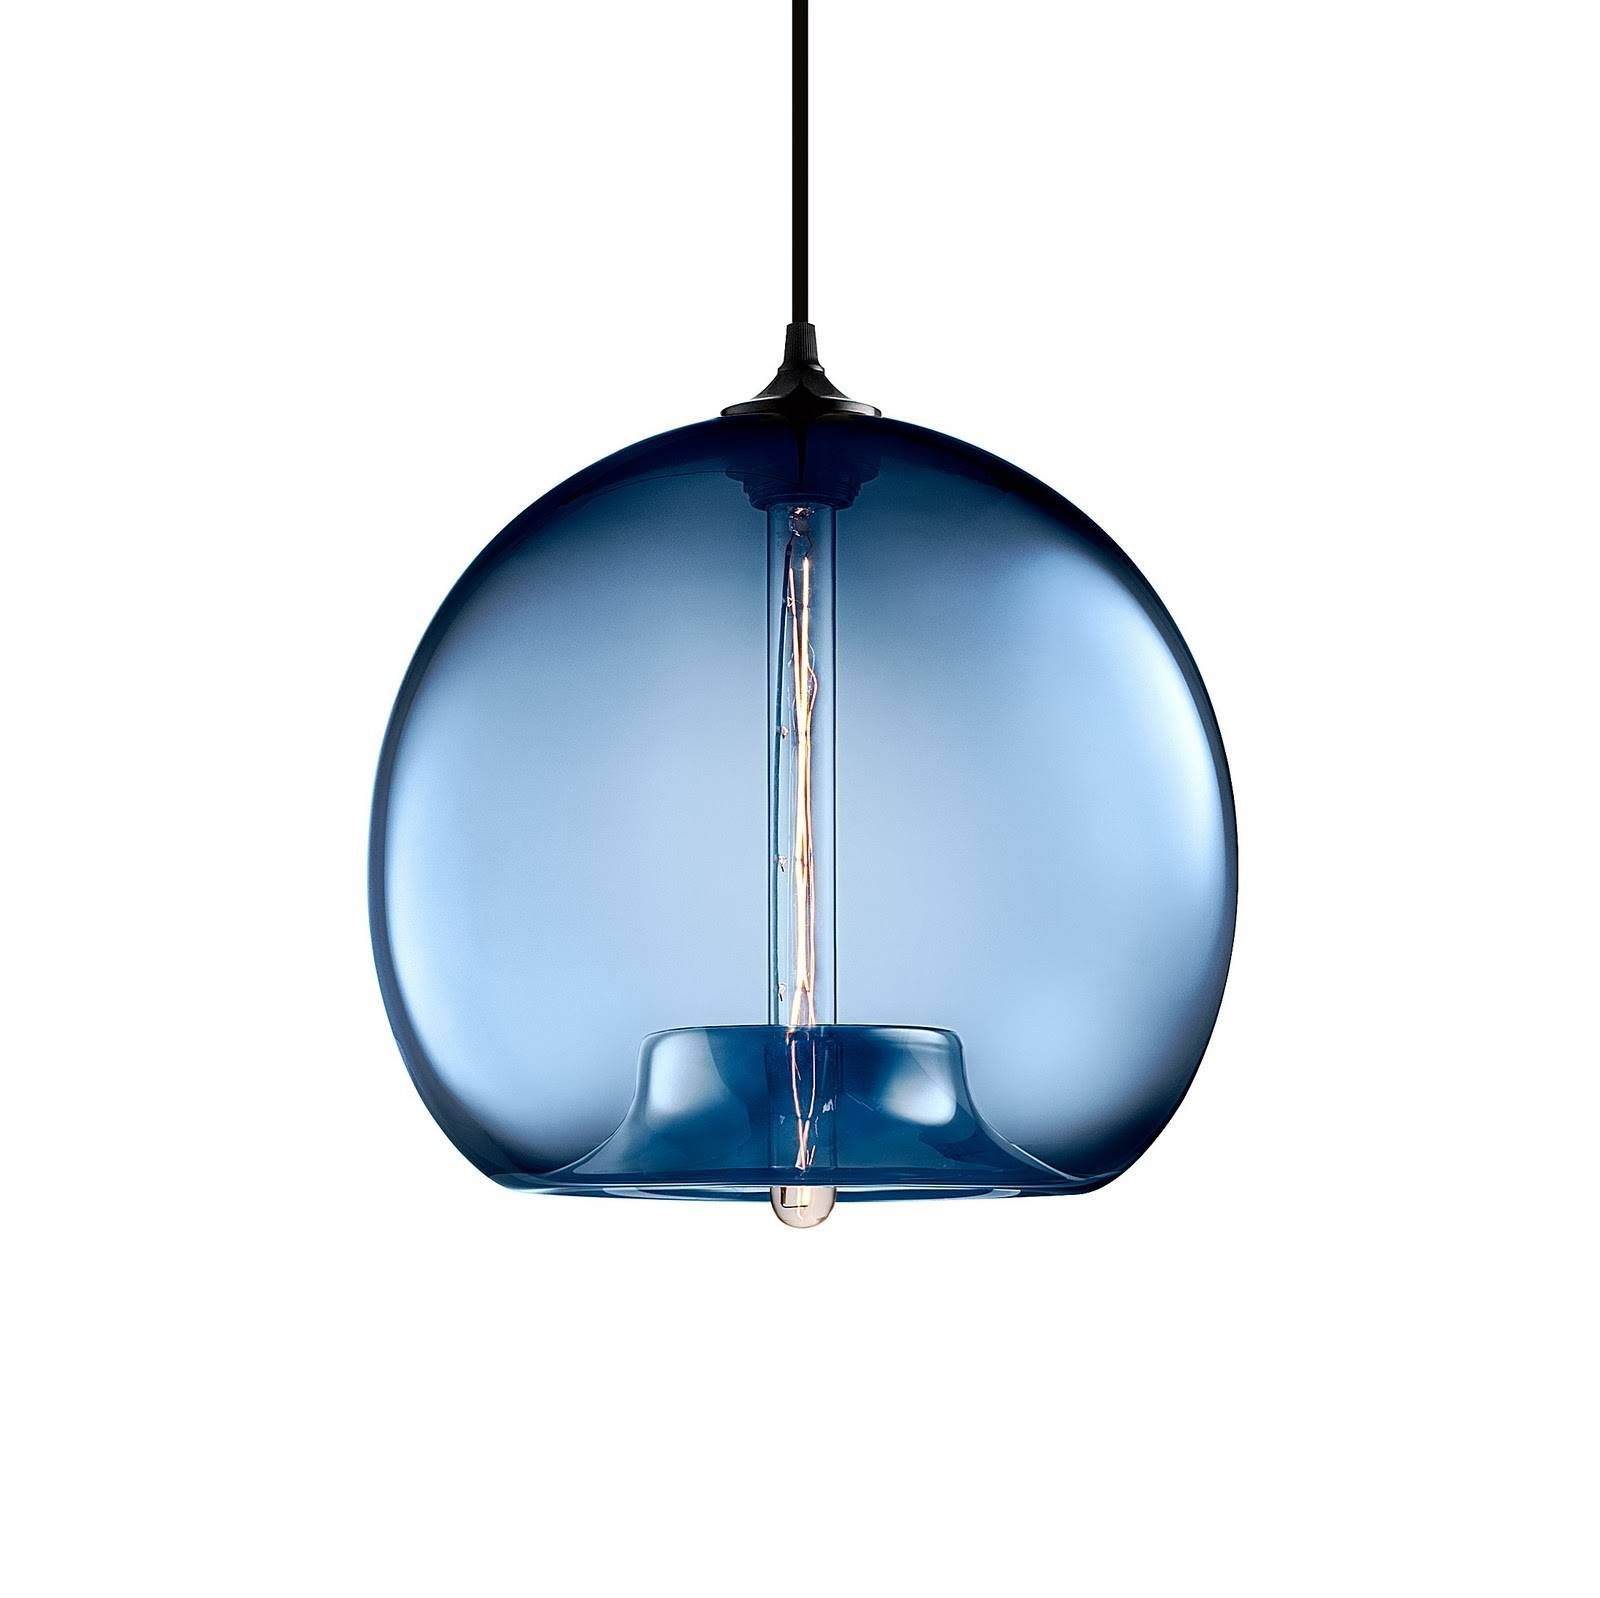 Blown Glass Pendant Lighting For Kitchen ~ Picgit for Blown Glass Pendant Lighting for Kitchen (Image 7 of 15)